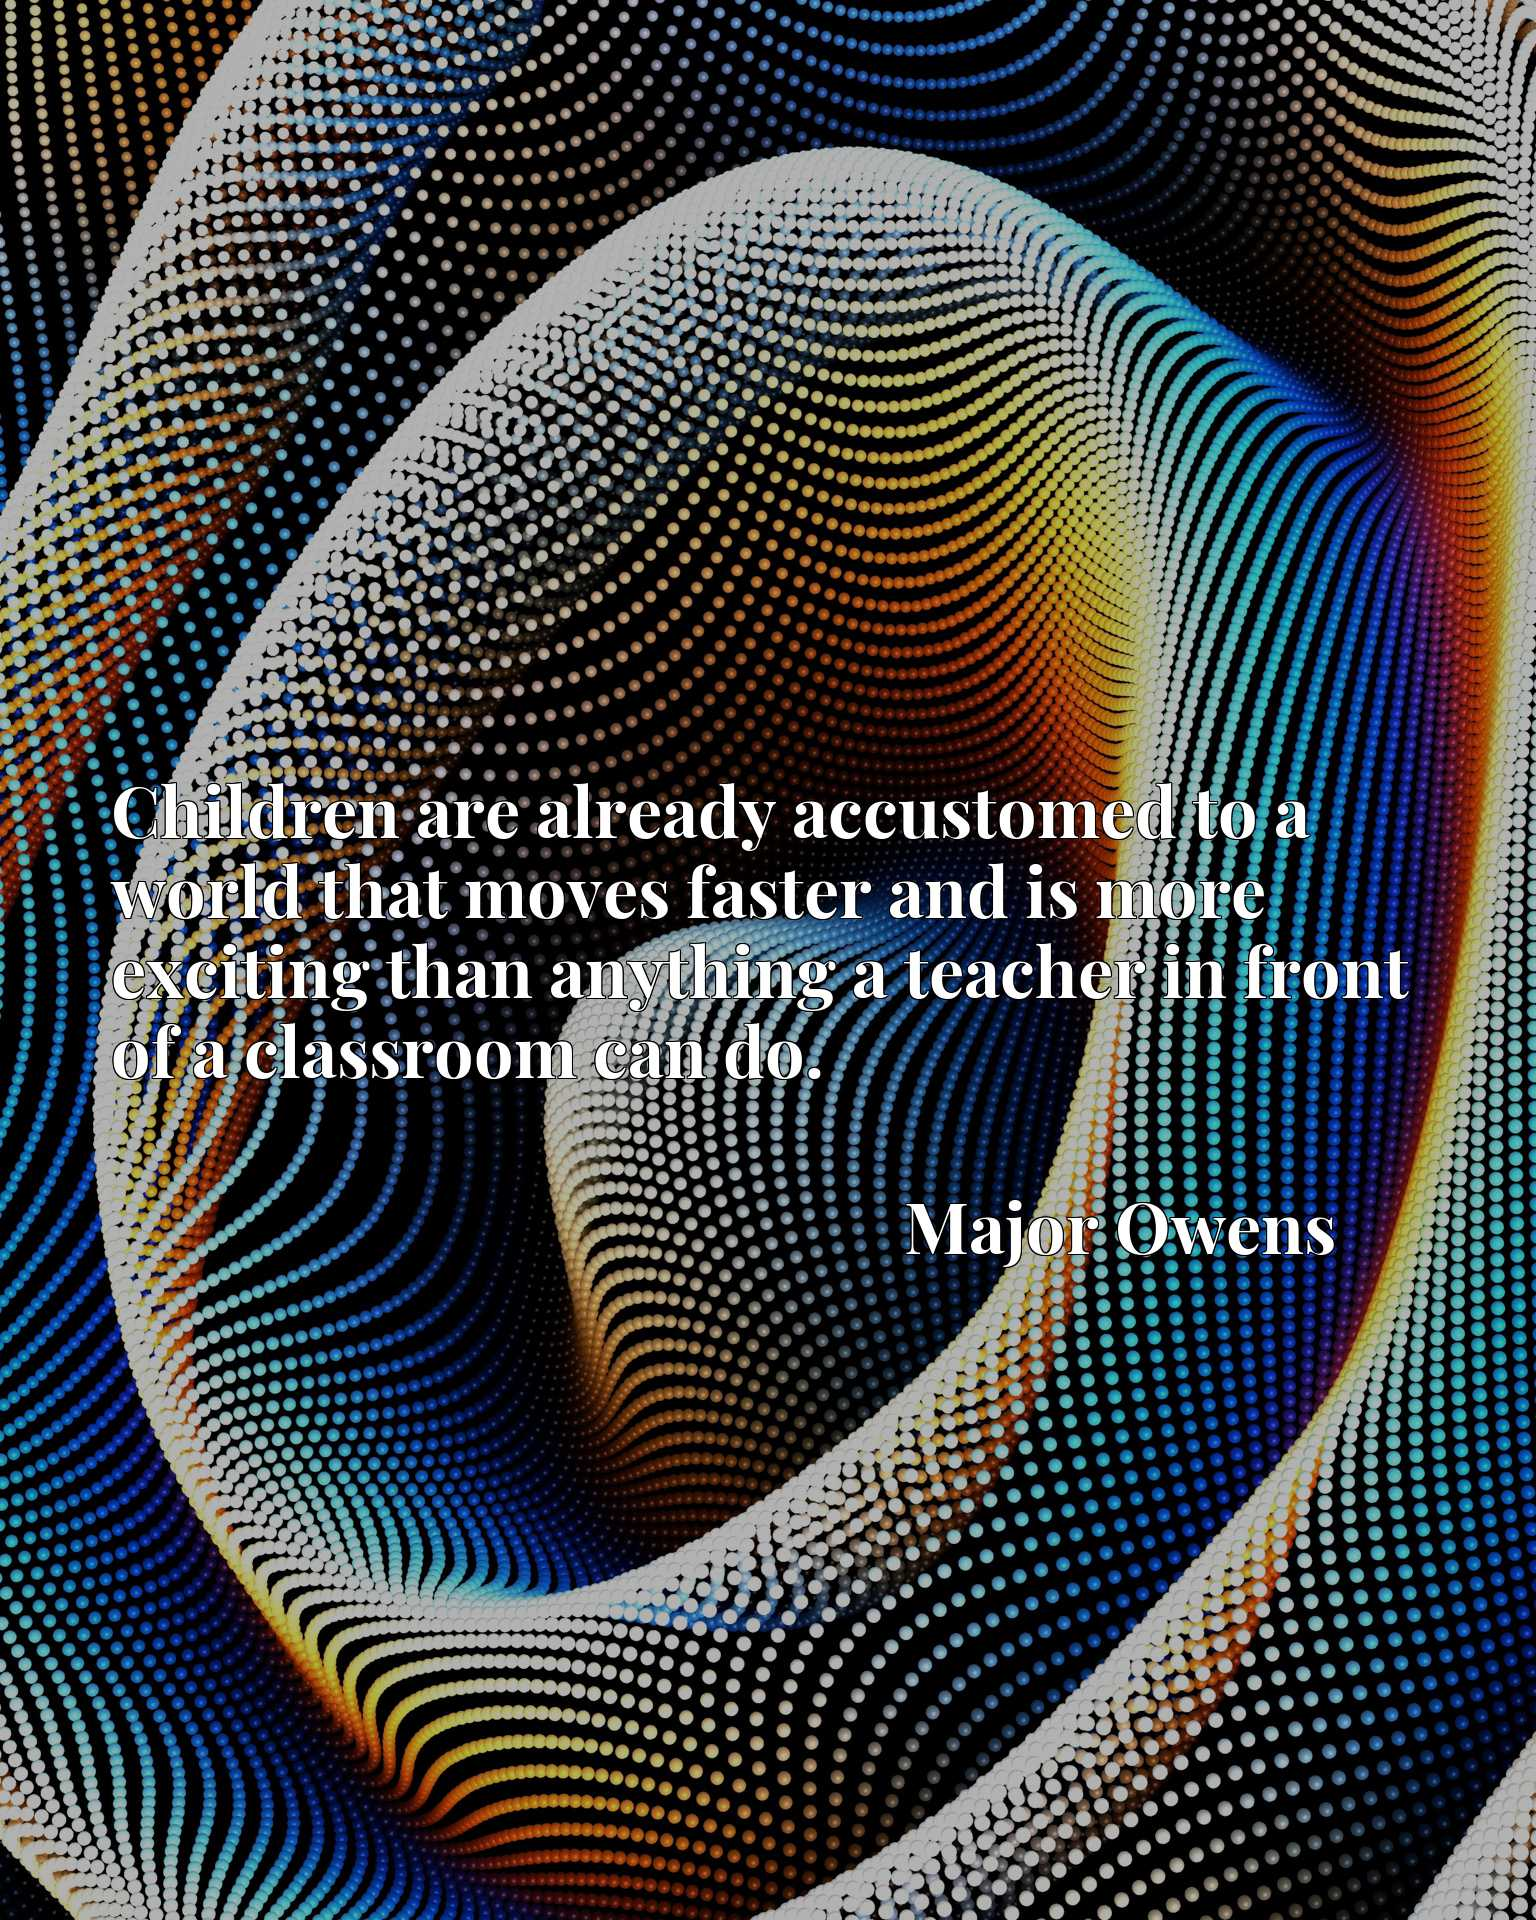 Quote Picture :Children are already accustomed to a world that moves faster and is more exciting than anything a teacher in front of a classroom can do.